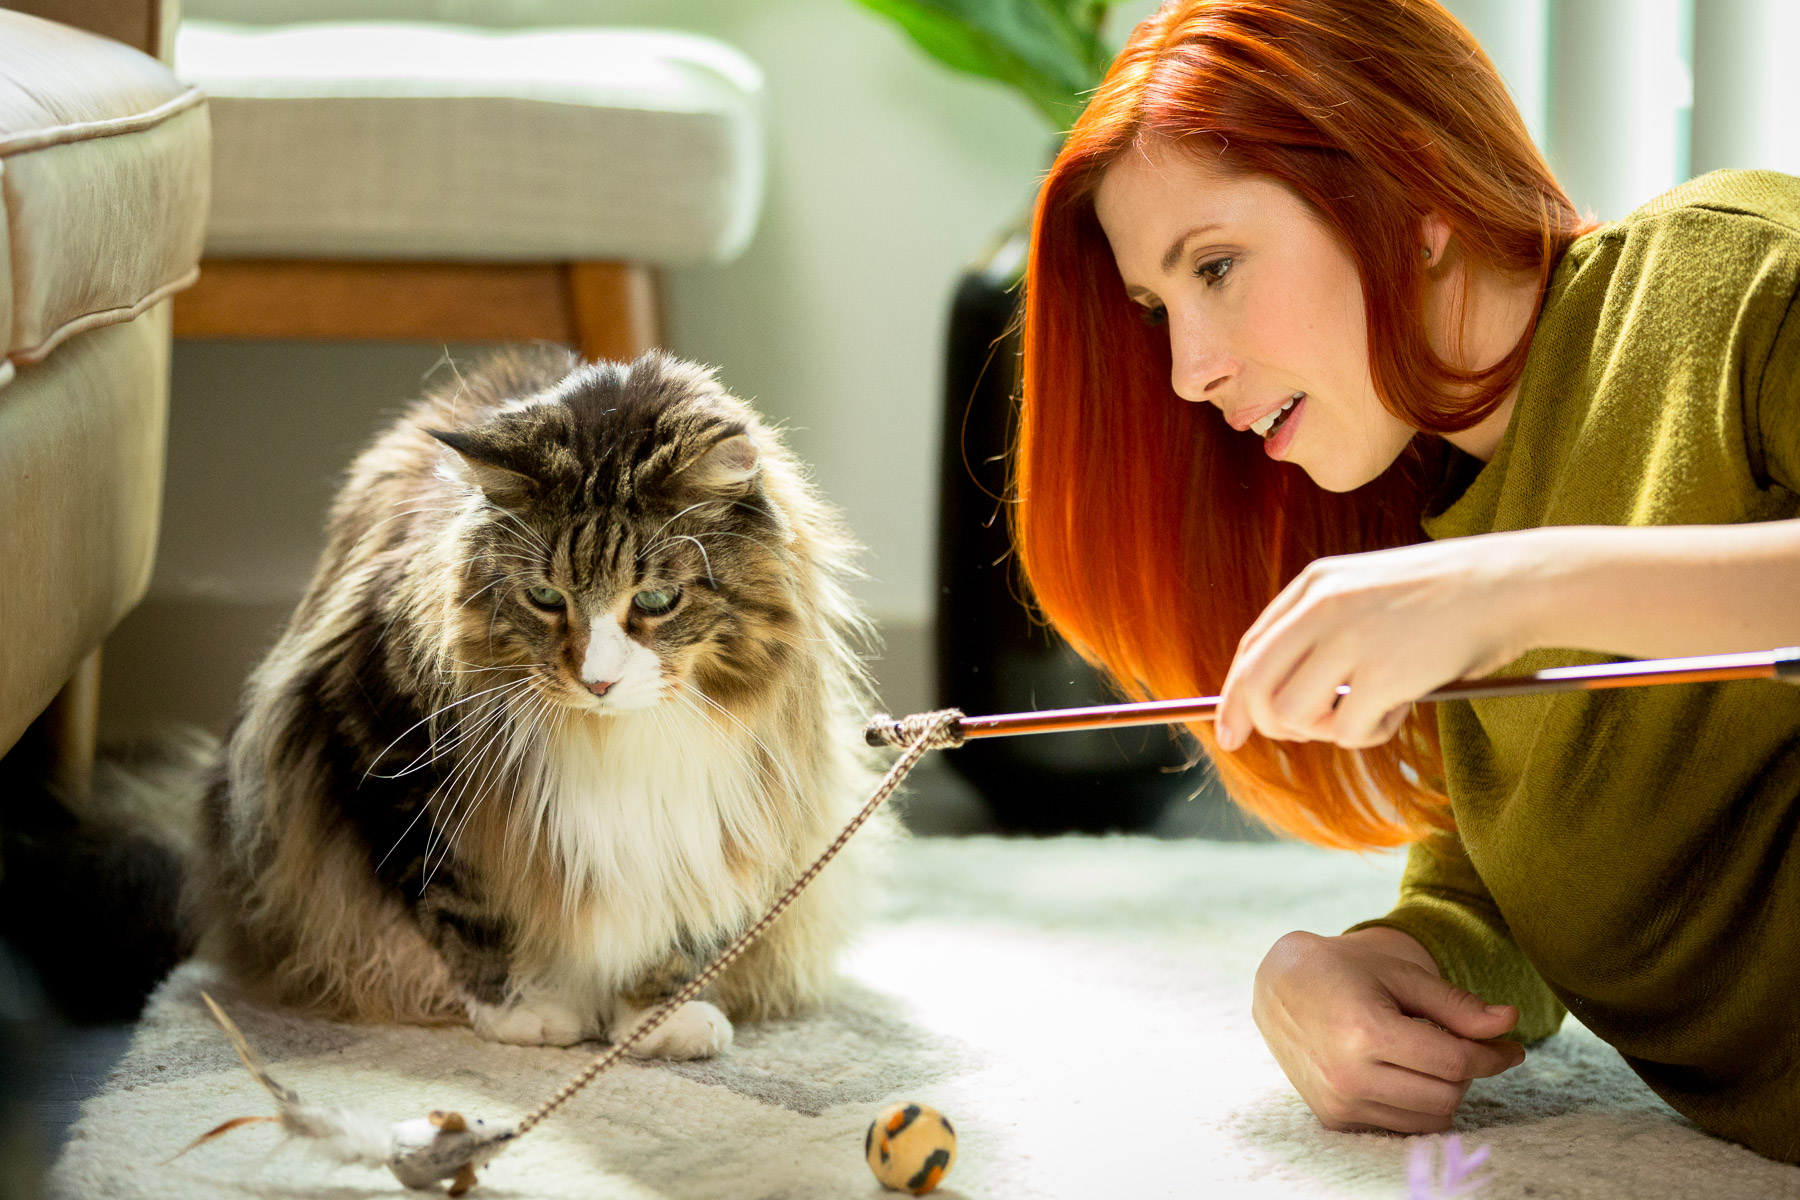 girl-playing-with-cat-pet-photography.jpg